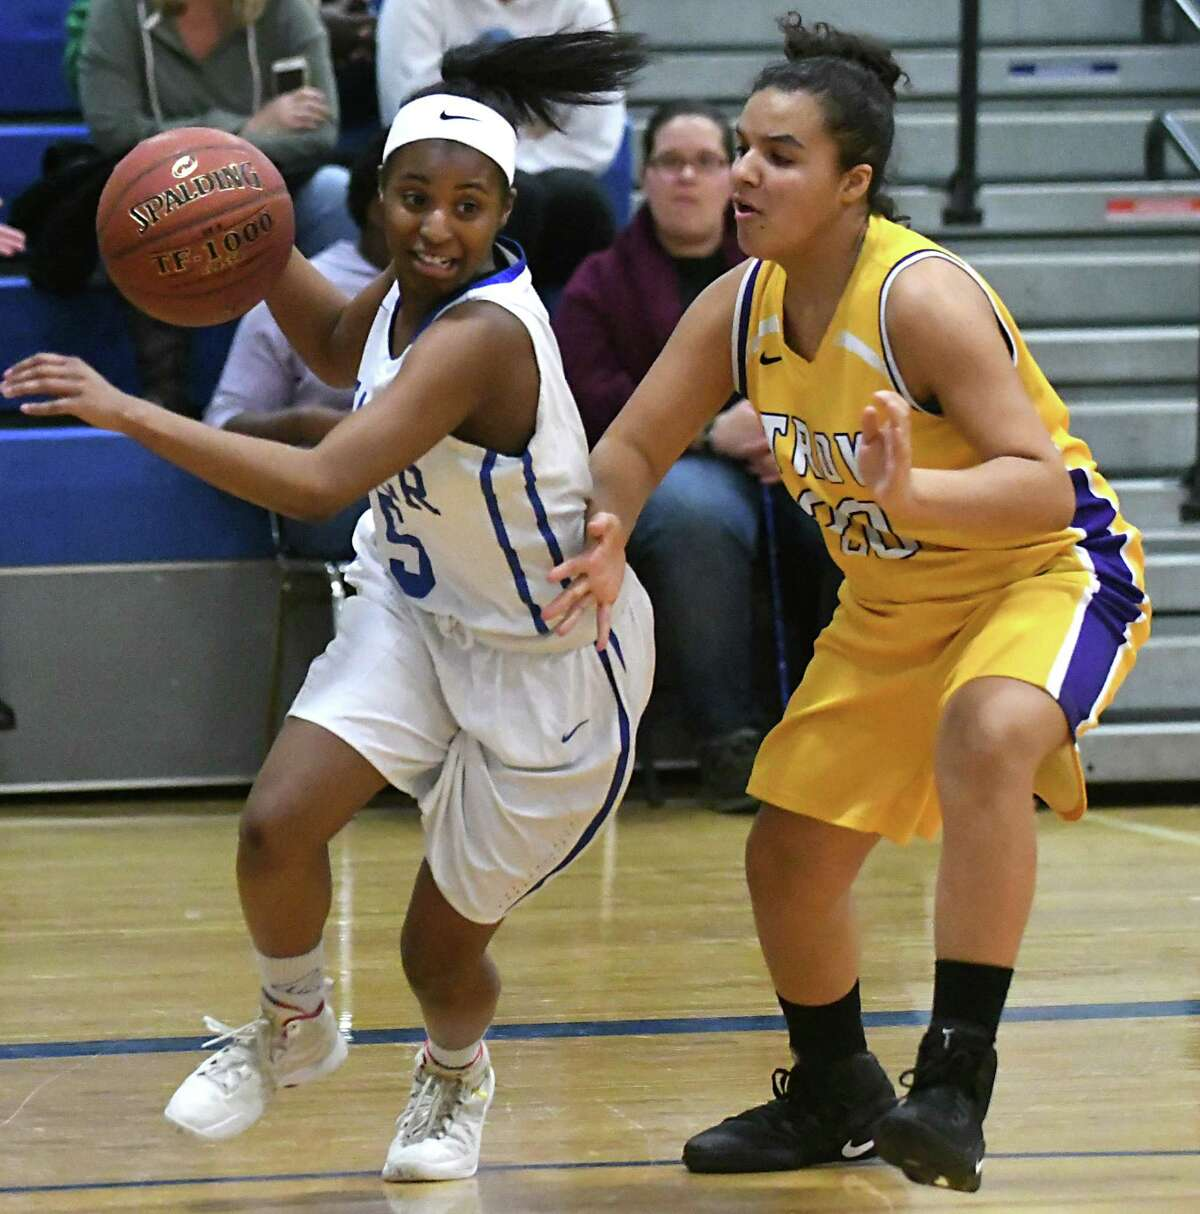 Shaker's Briannah Dukes is guarded by Troy's Nadia Brown as she drives baseline to the basket during a Class AA girls' basketball game on Wednesday, Feb. 22, 2017 in Latham, N.Y. (Lori Van Buren / Times Union)